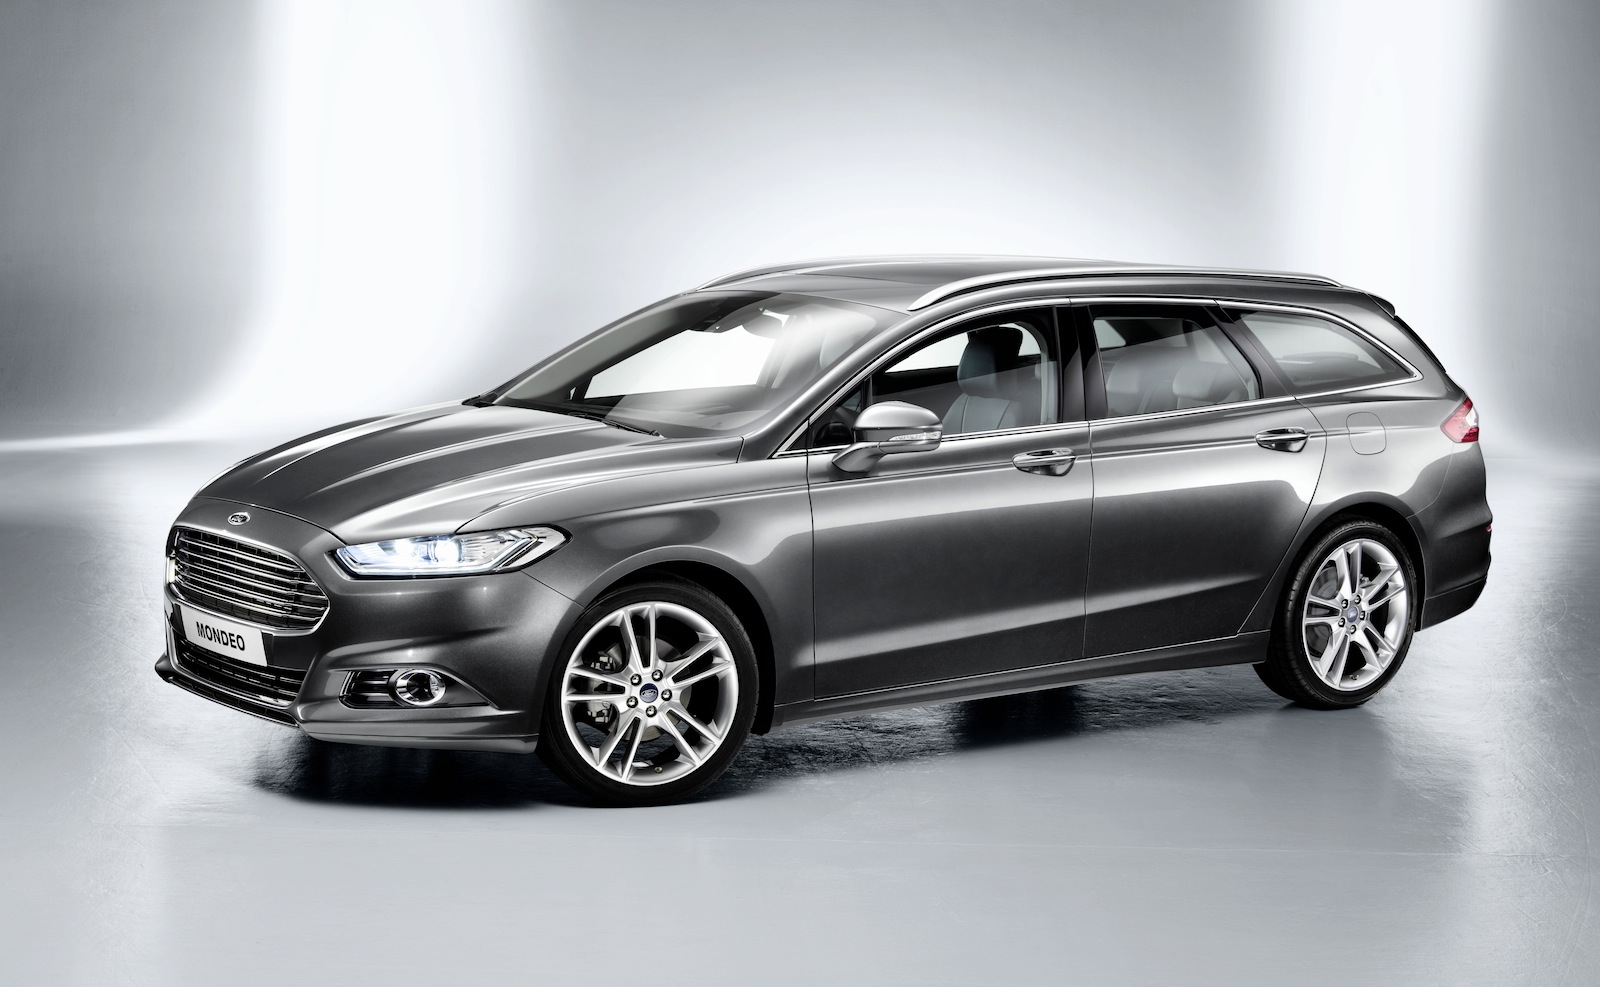 2013 ford mondeo wagon and hybrid revealed photos caradvice. Black Bedroom Furniture Sets. Home Design Ideas